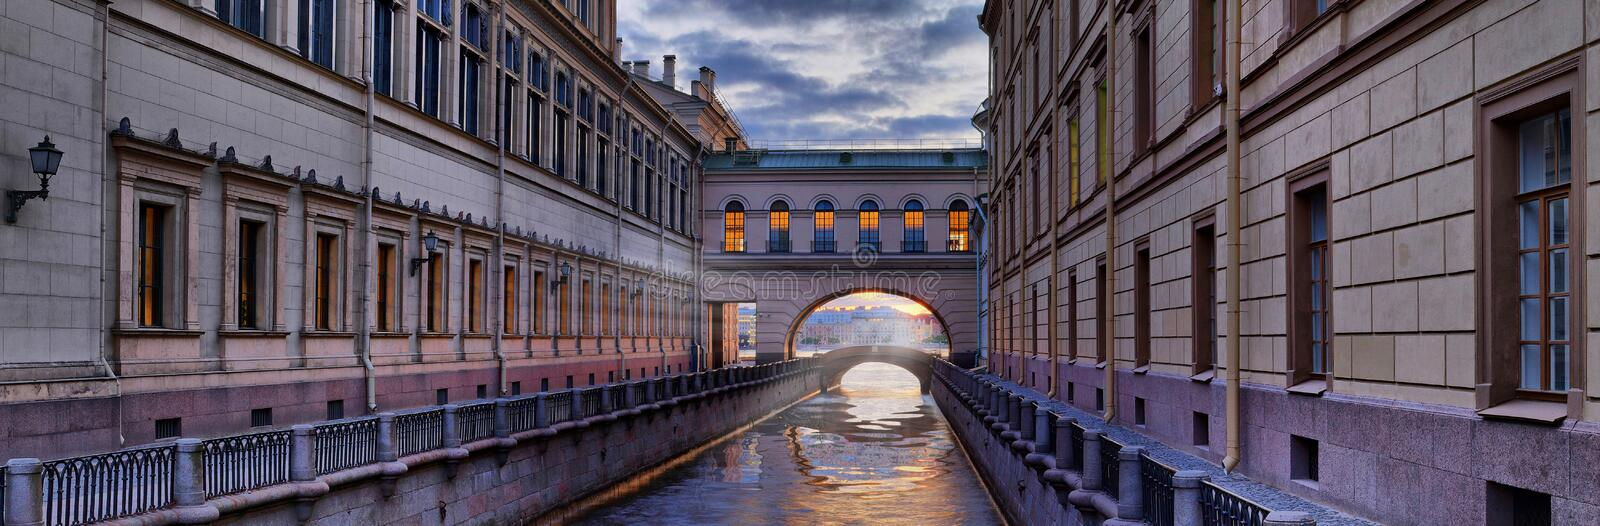 Fires of the Hermitage over the Winter Canal in St. Petersburg. Panorama of the Winter Canal and fires of the Hermitage in St. Petersburg stock photo